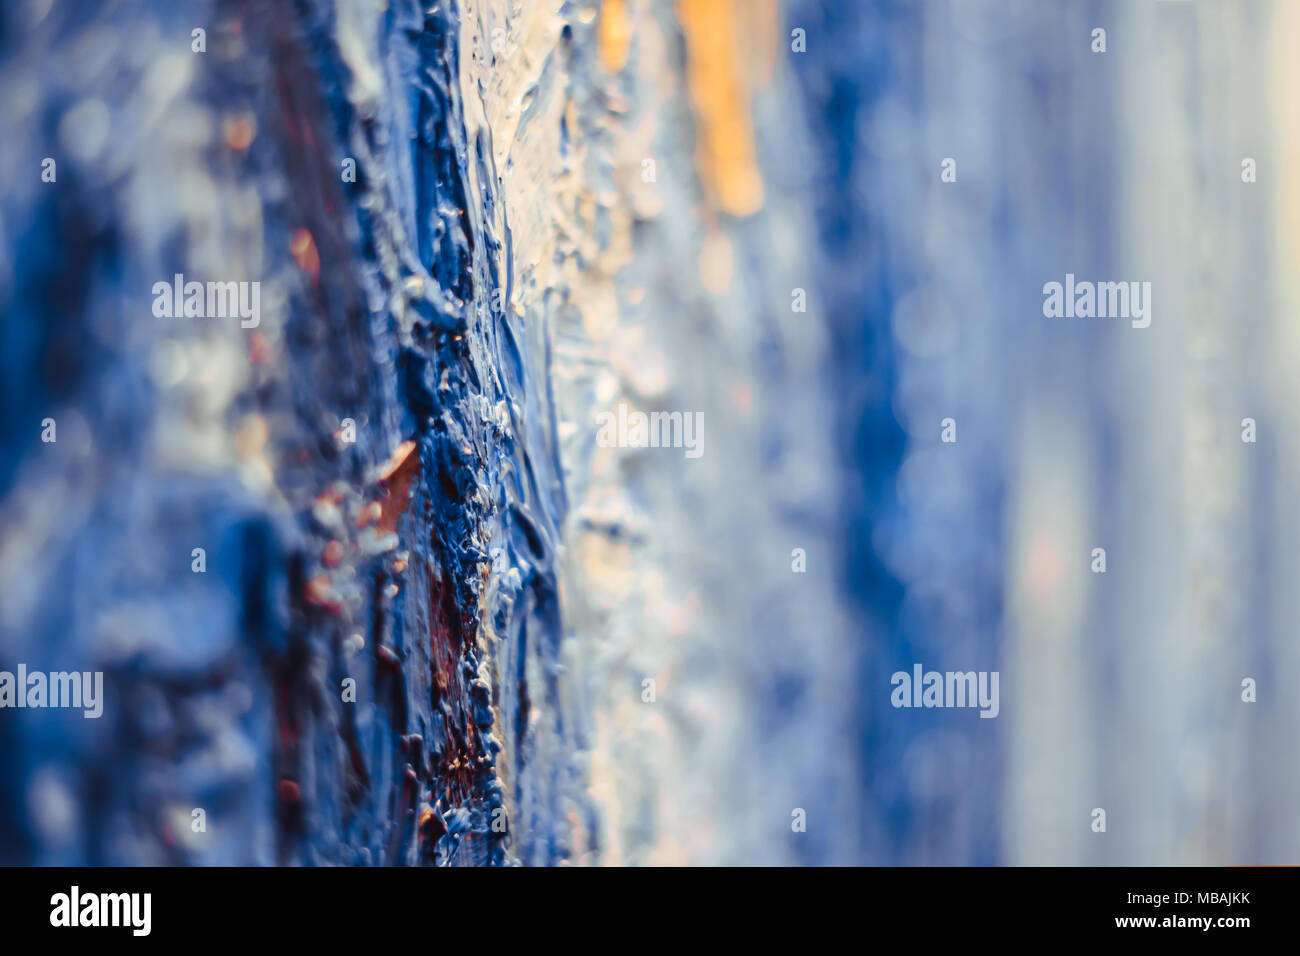 abstract wallpaper of oil painting with brush strokes in cool colors - Stock Image